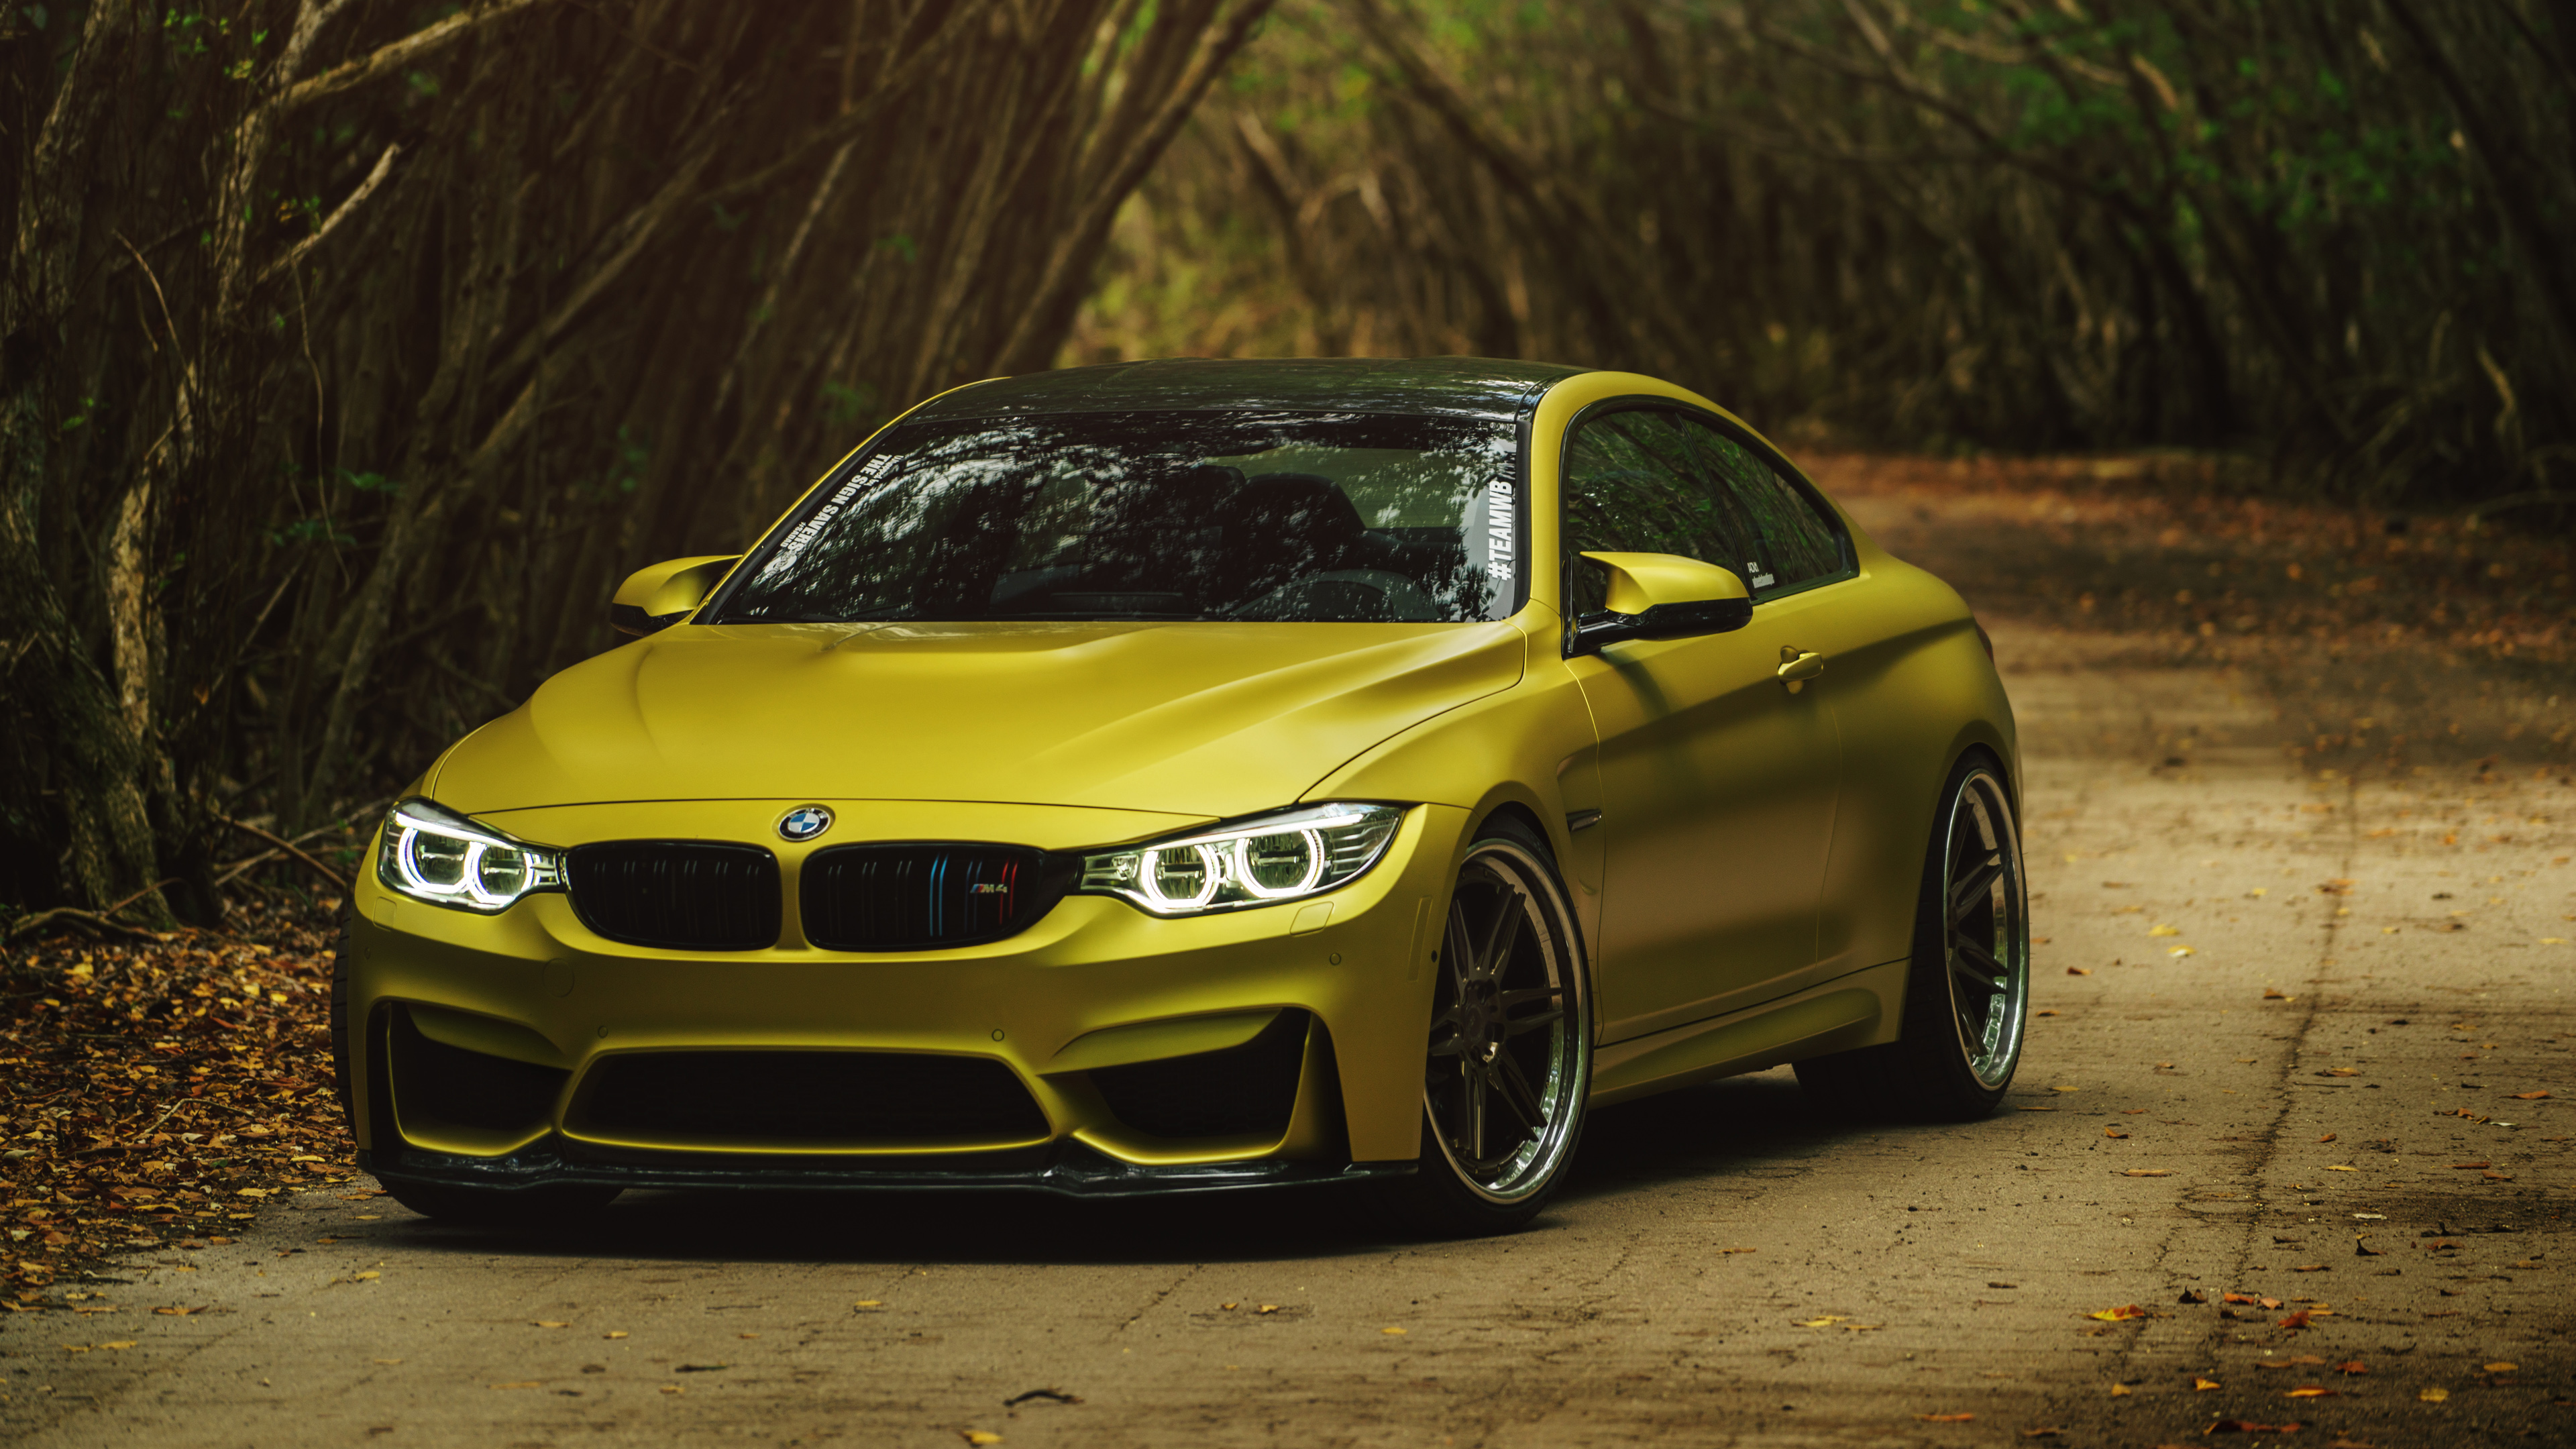 Bmw M Bilder Bmw M4 Golden Hd Hintergrund And Background Fotos 40273432